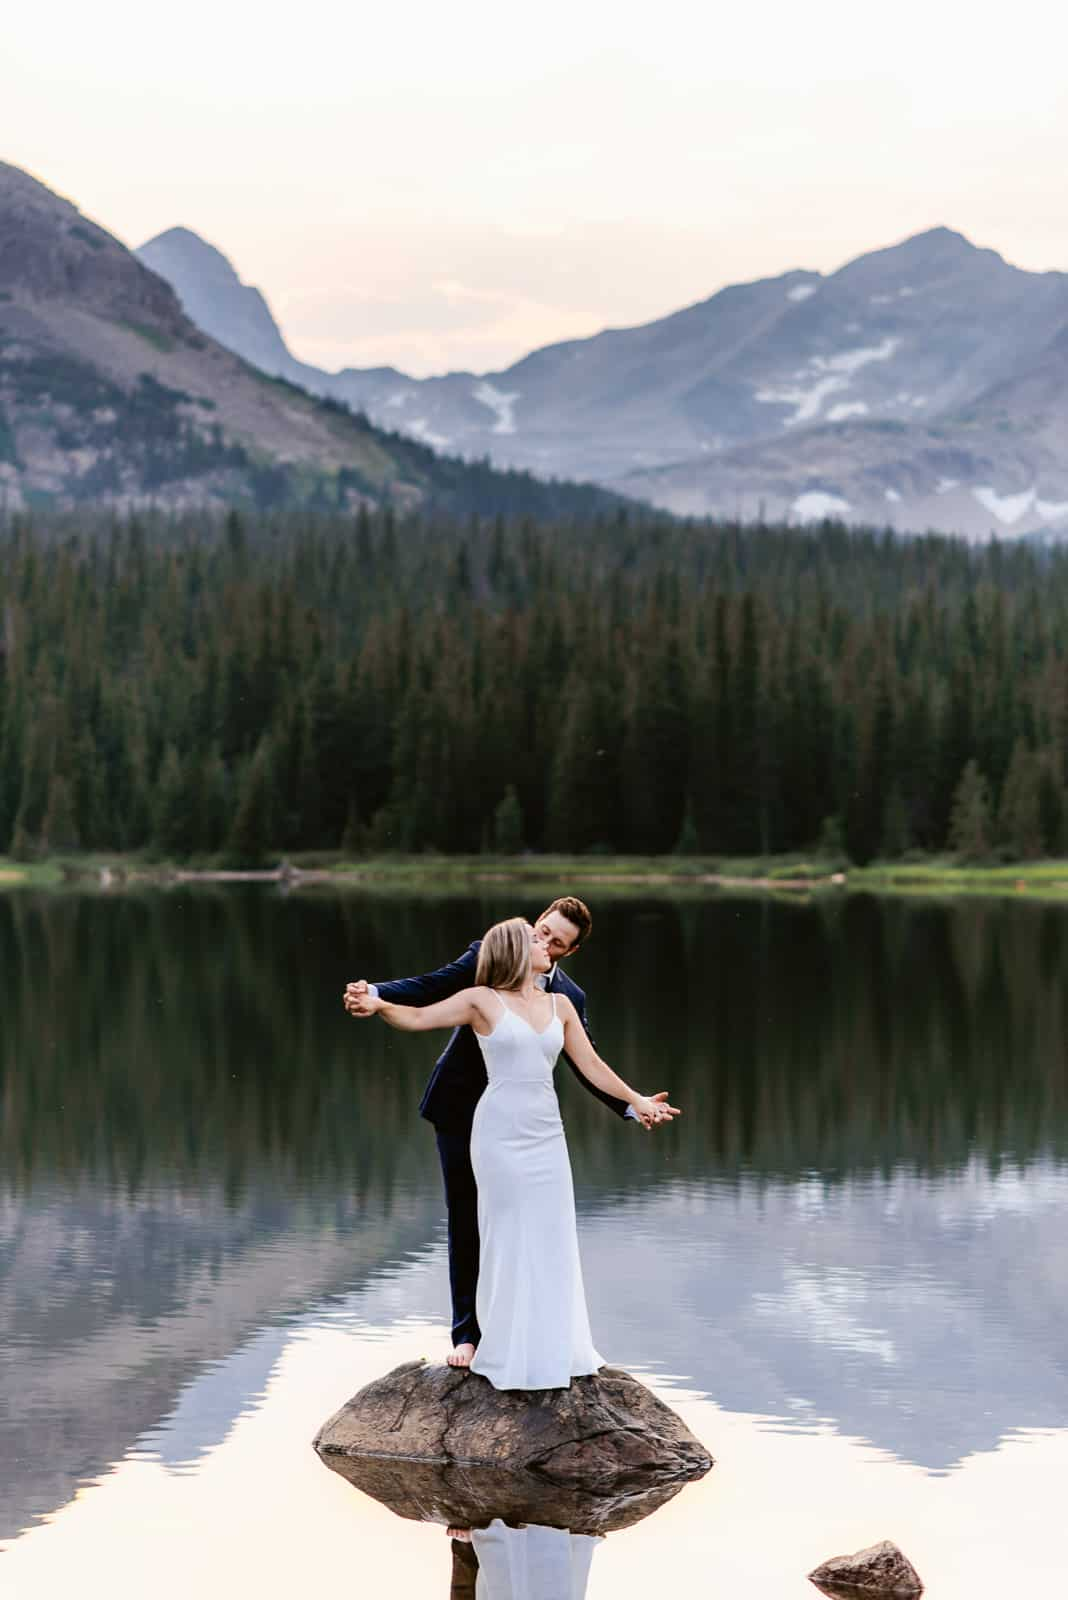 Best Elopement Locations | Josie V Photography, Couple embraces on the water at Brainard Lake near Denver. Brainard Lake is one of the best locations for engagement photos and elopements near Denver.